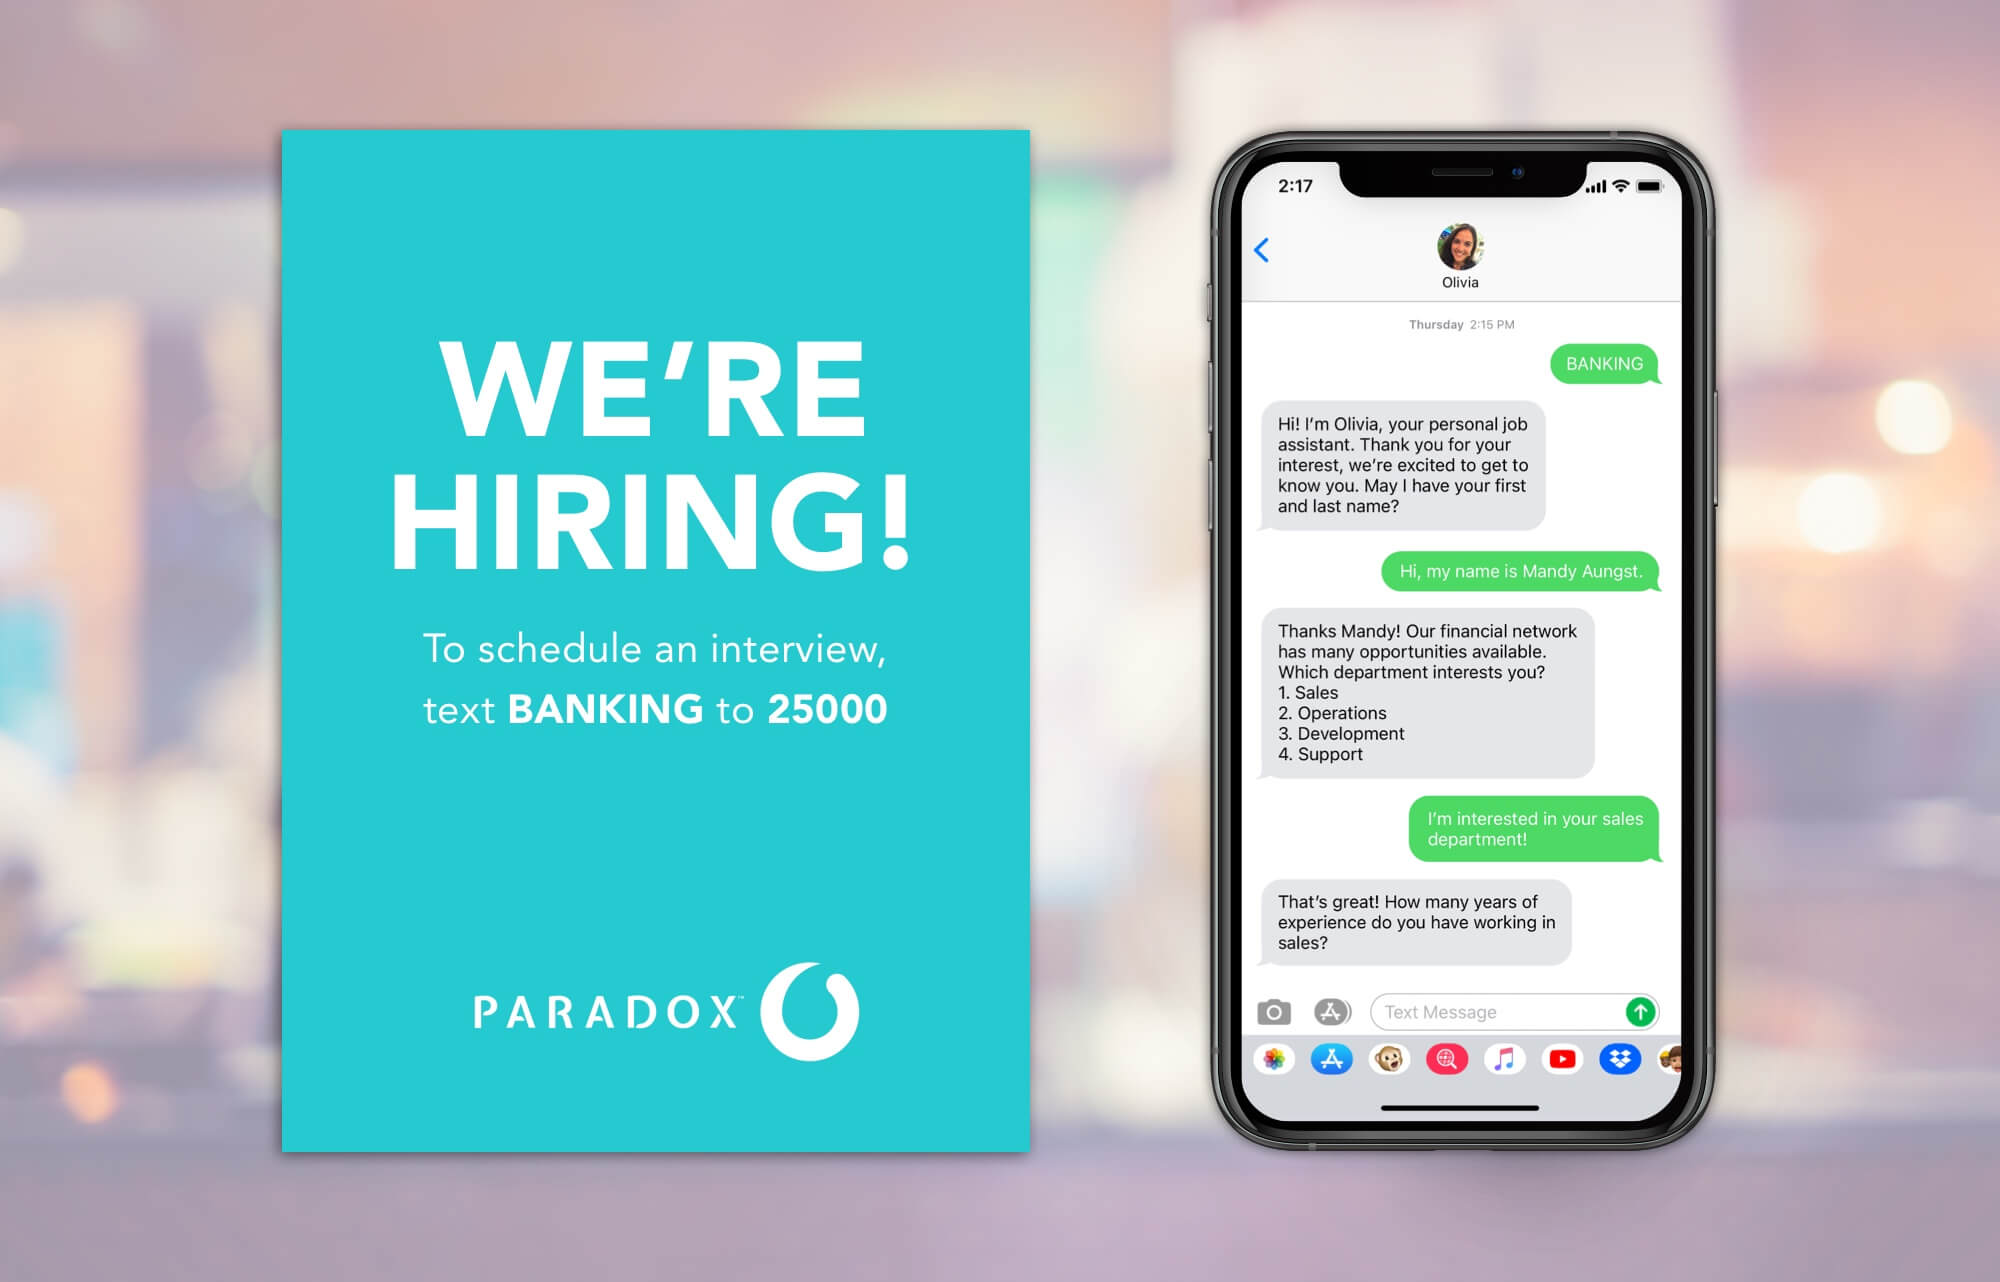 Schedule interviews with job candidates for financial positions through AI recruiting assistant Olivia from Paradox